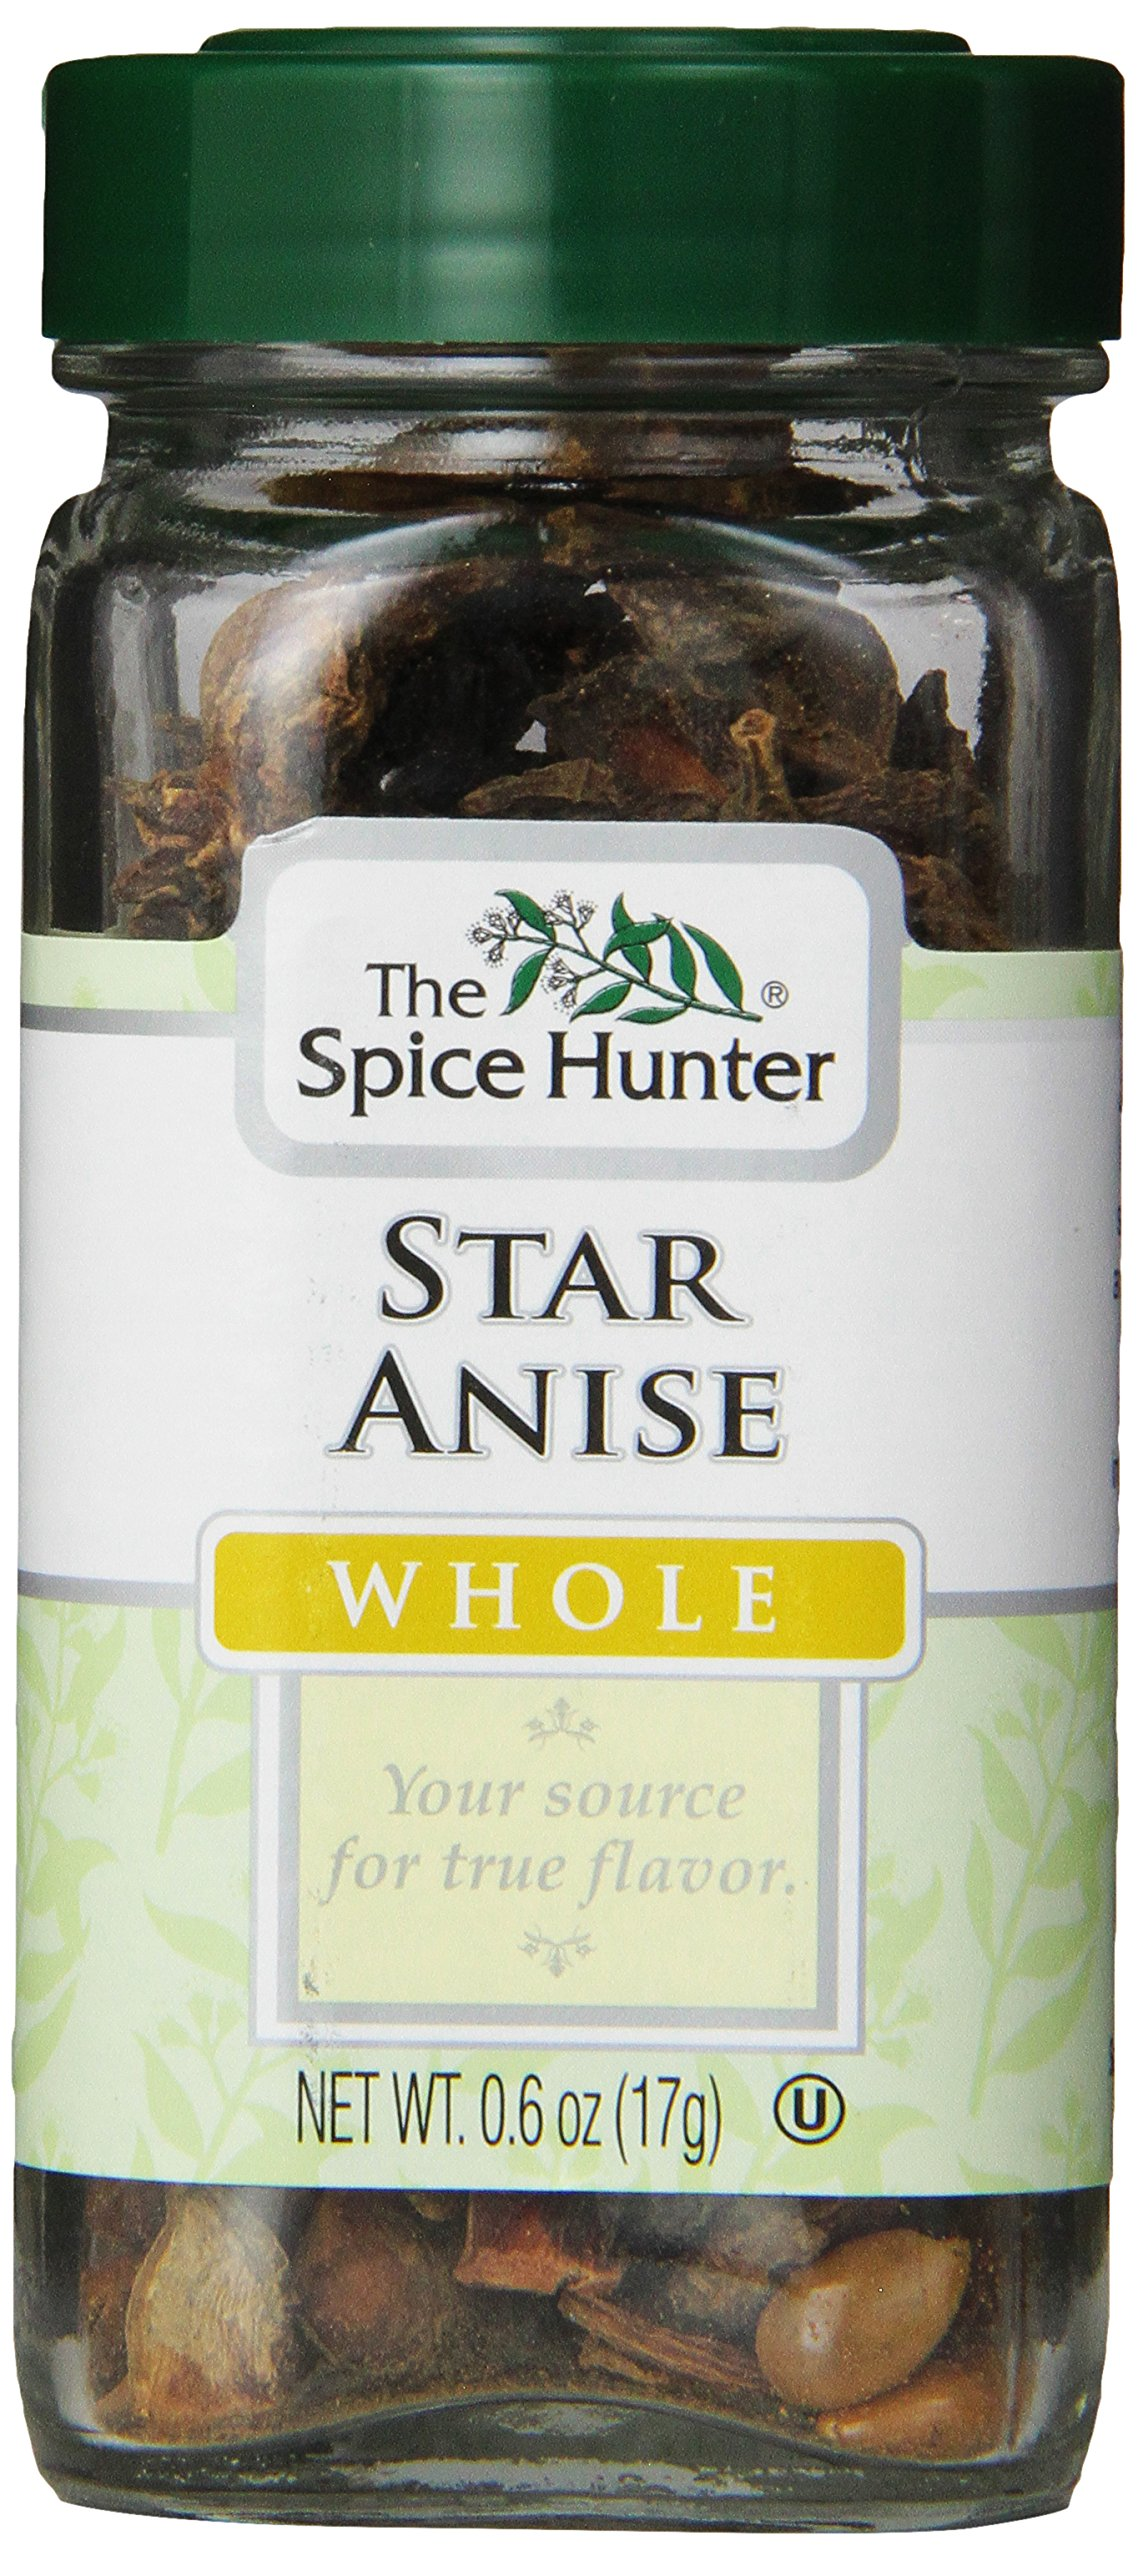 The Spice Hunter Star Anise, Whole, 0.6 Ounce Jar (Pack of 48)